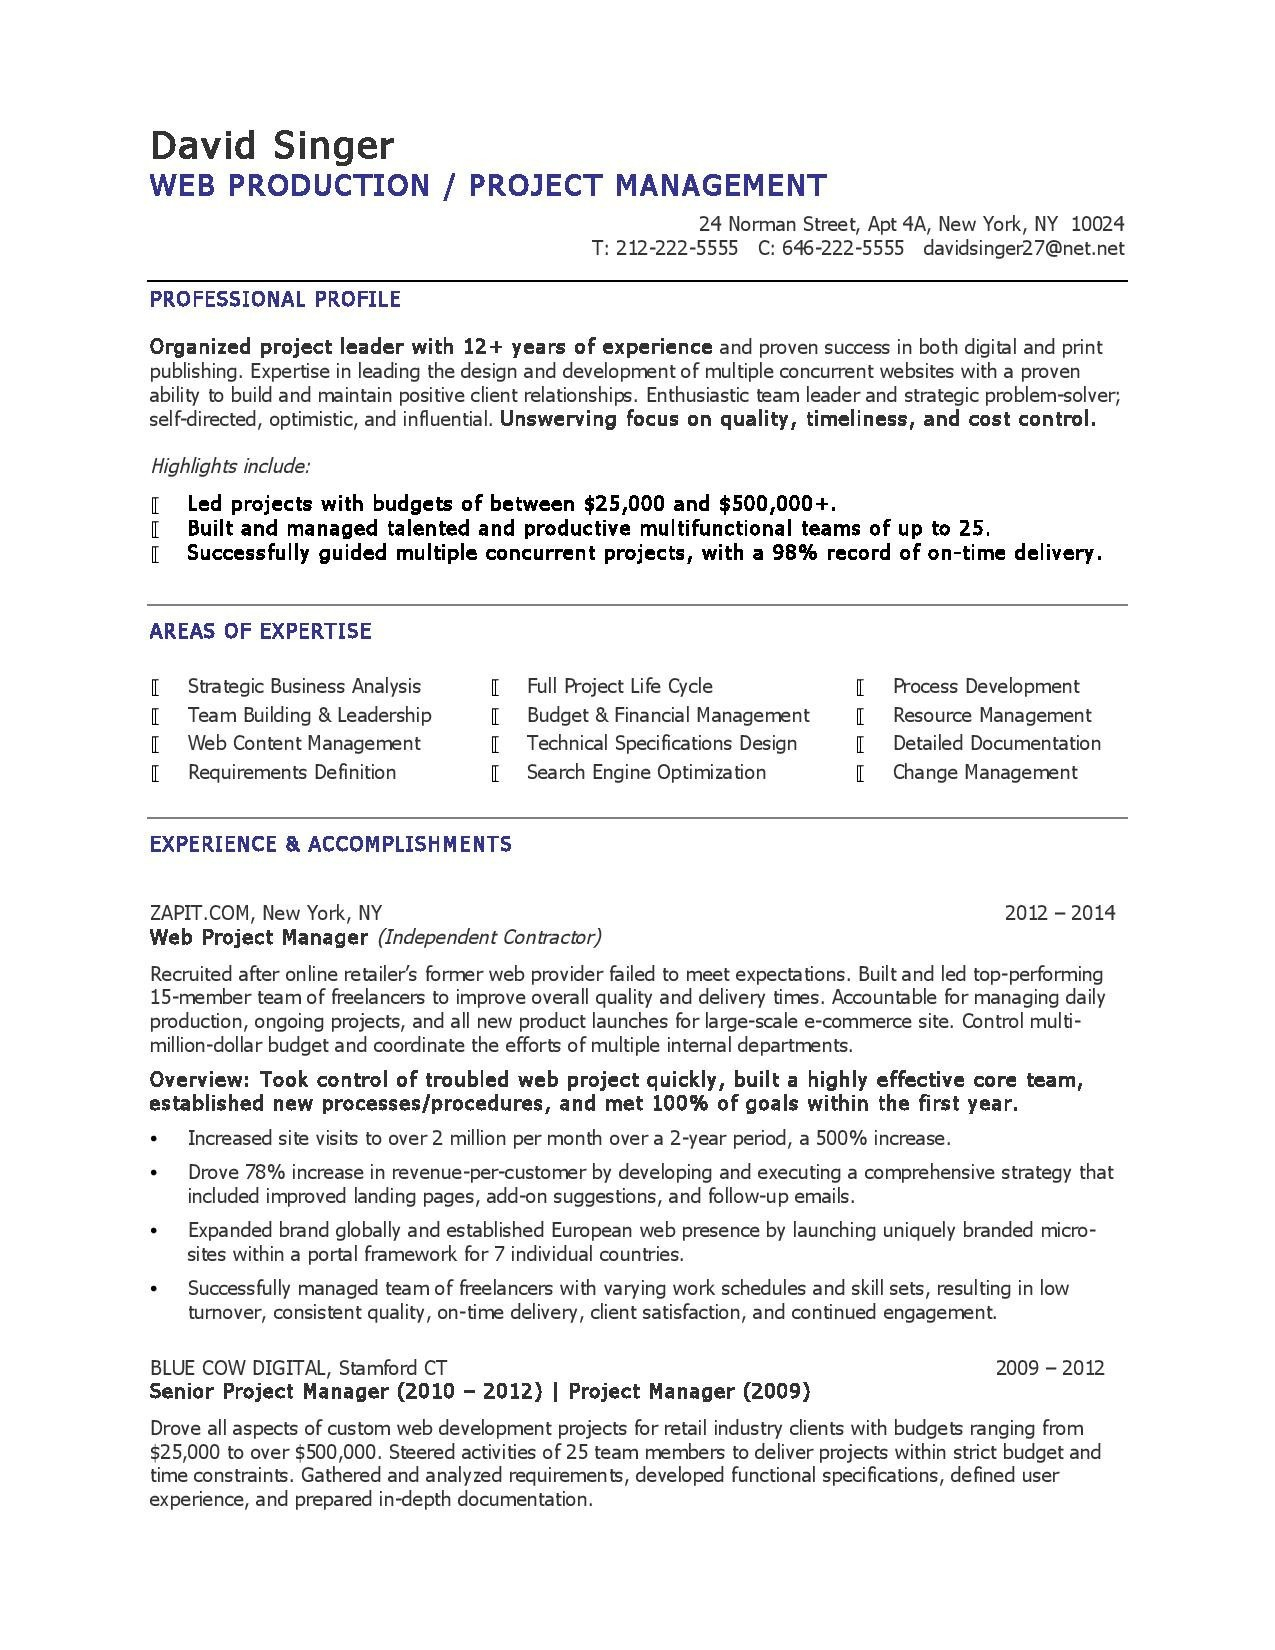 Self Storage Manager Resume - Sample Production Manager Resume Best Project Manager Resume